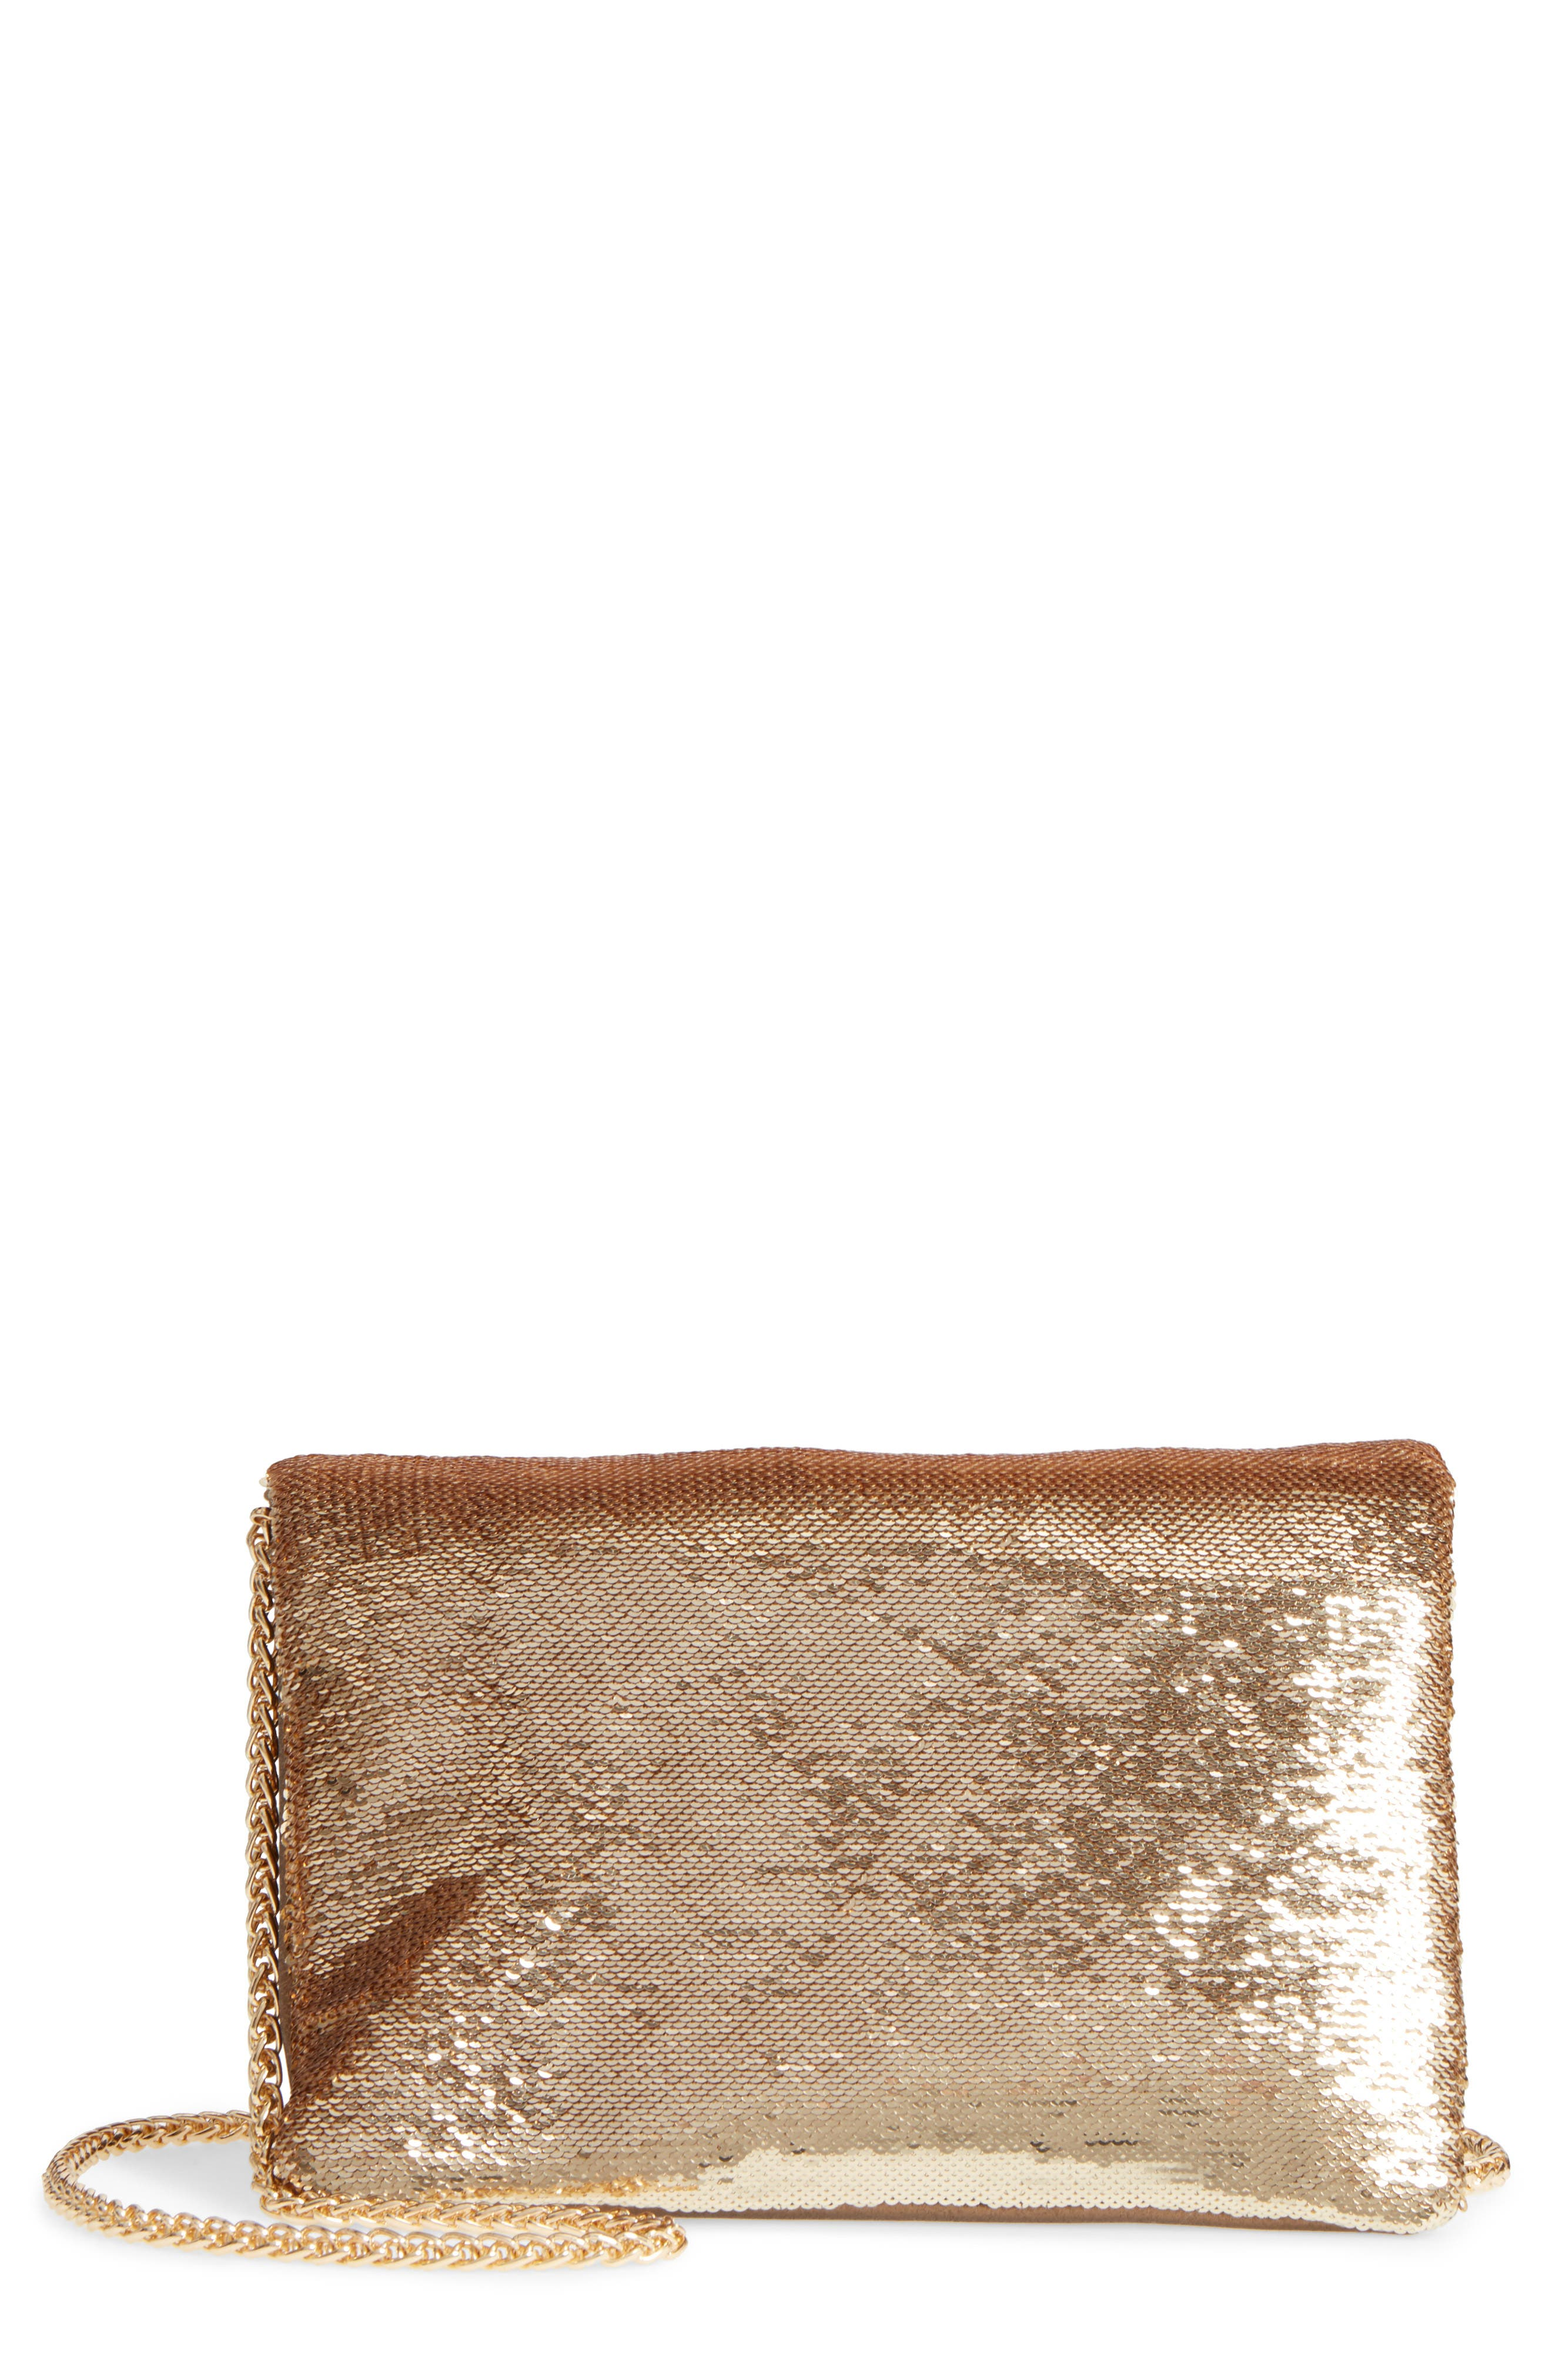 Main Image - Street Level Sequin Clutch